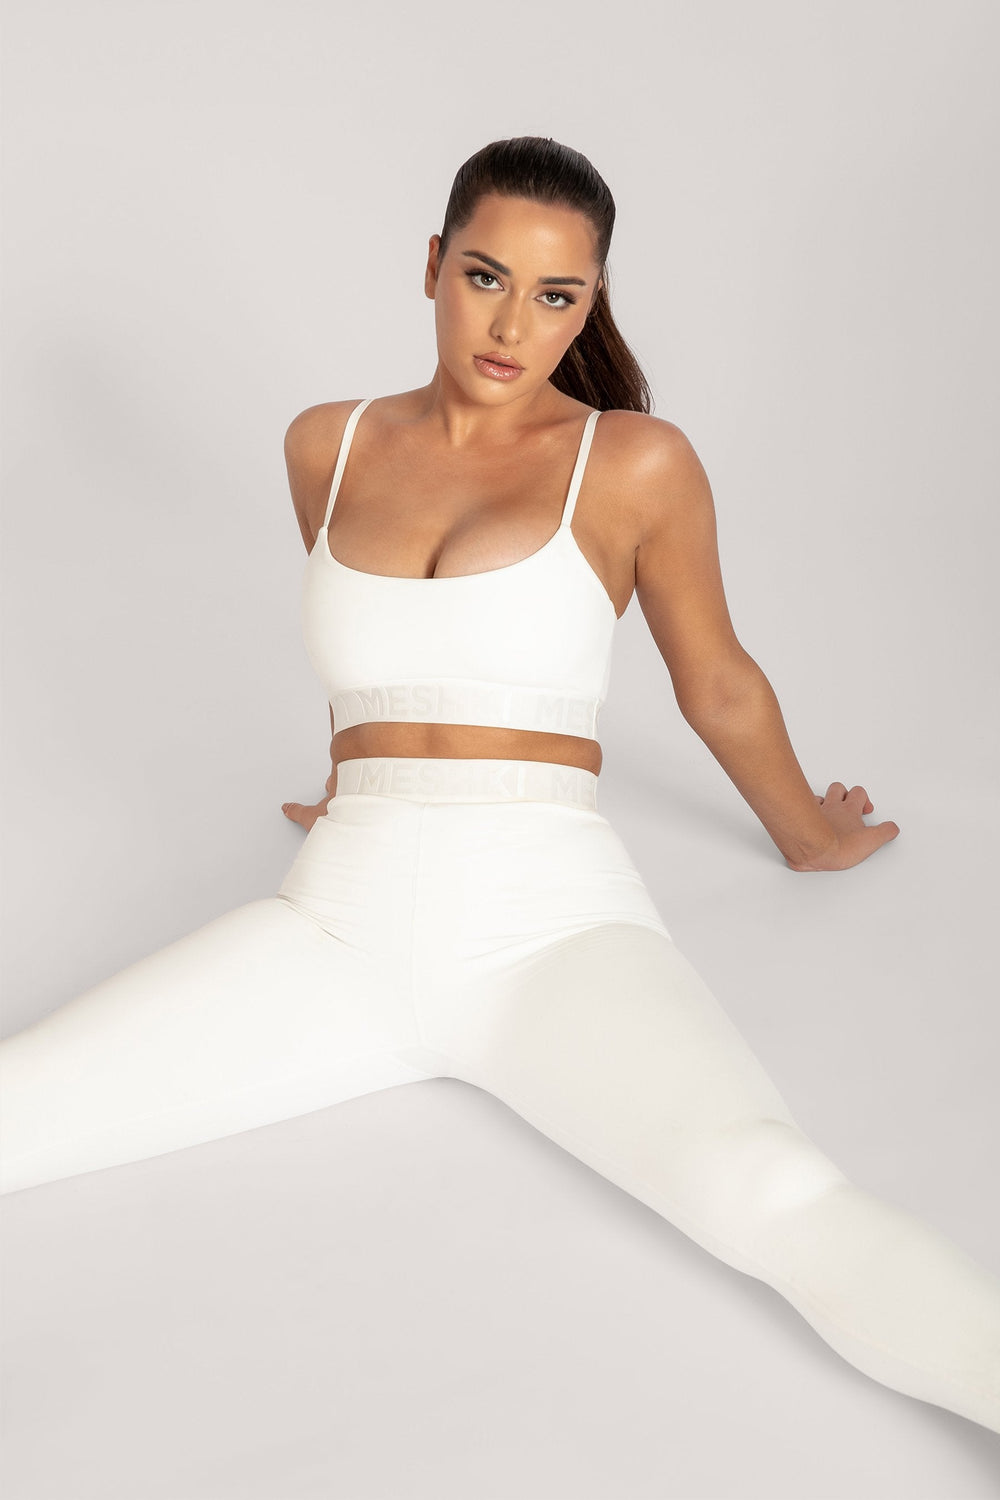 Acacia Meshki Full Length Leggings - White - MESHKI ?id=16076113608779